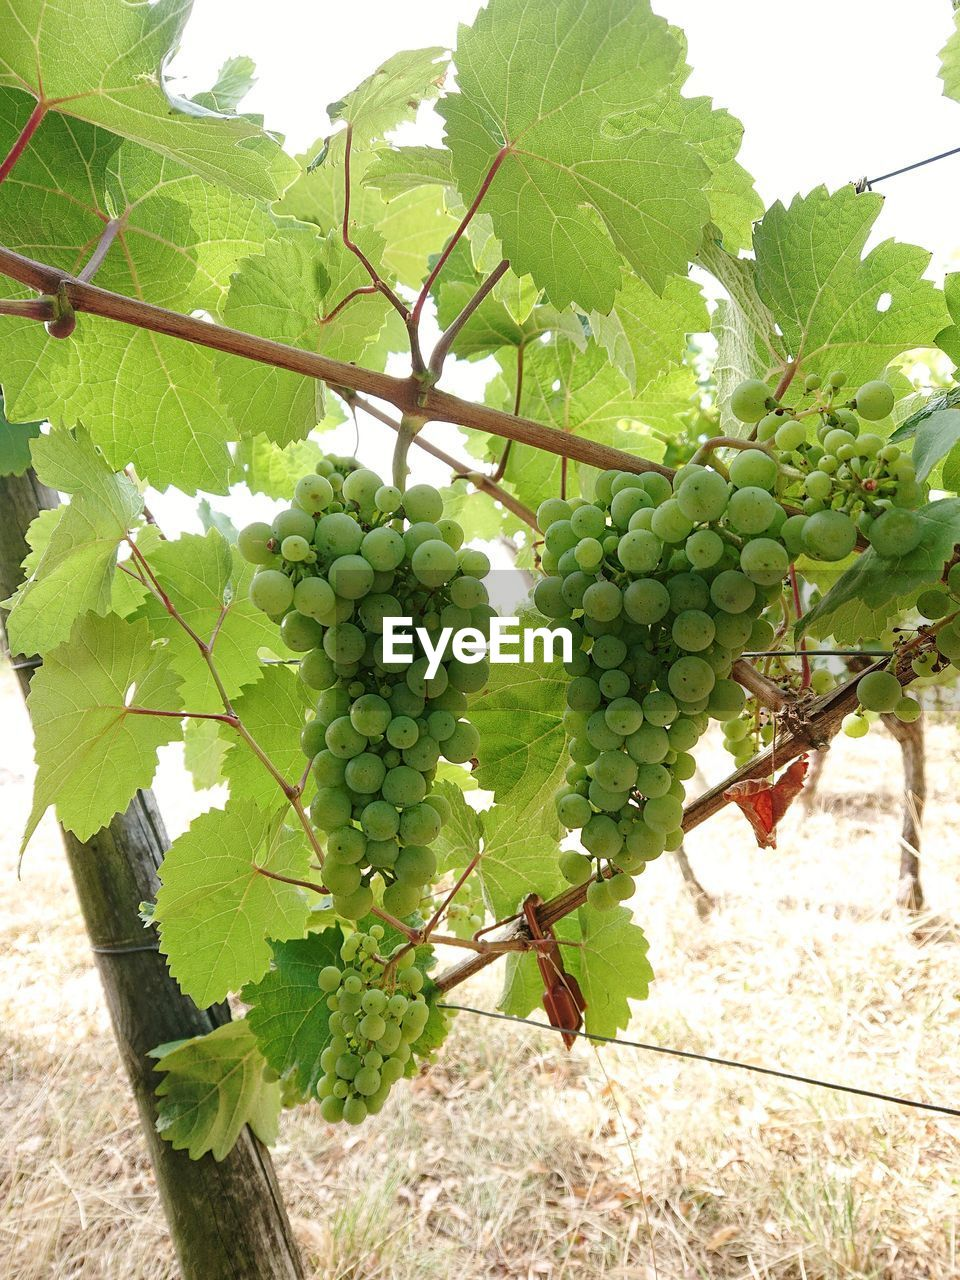 plant, fruit, growth, food and drink, healthy eating, food, leaf, plant part, vineyard, green color, grape, nature, freshness, vine, agriculture, tree, day, no people, hanging, beauty in nature, outdoors, winemaking, plantation, ripe